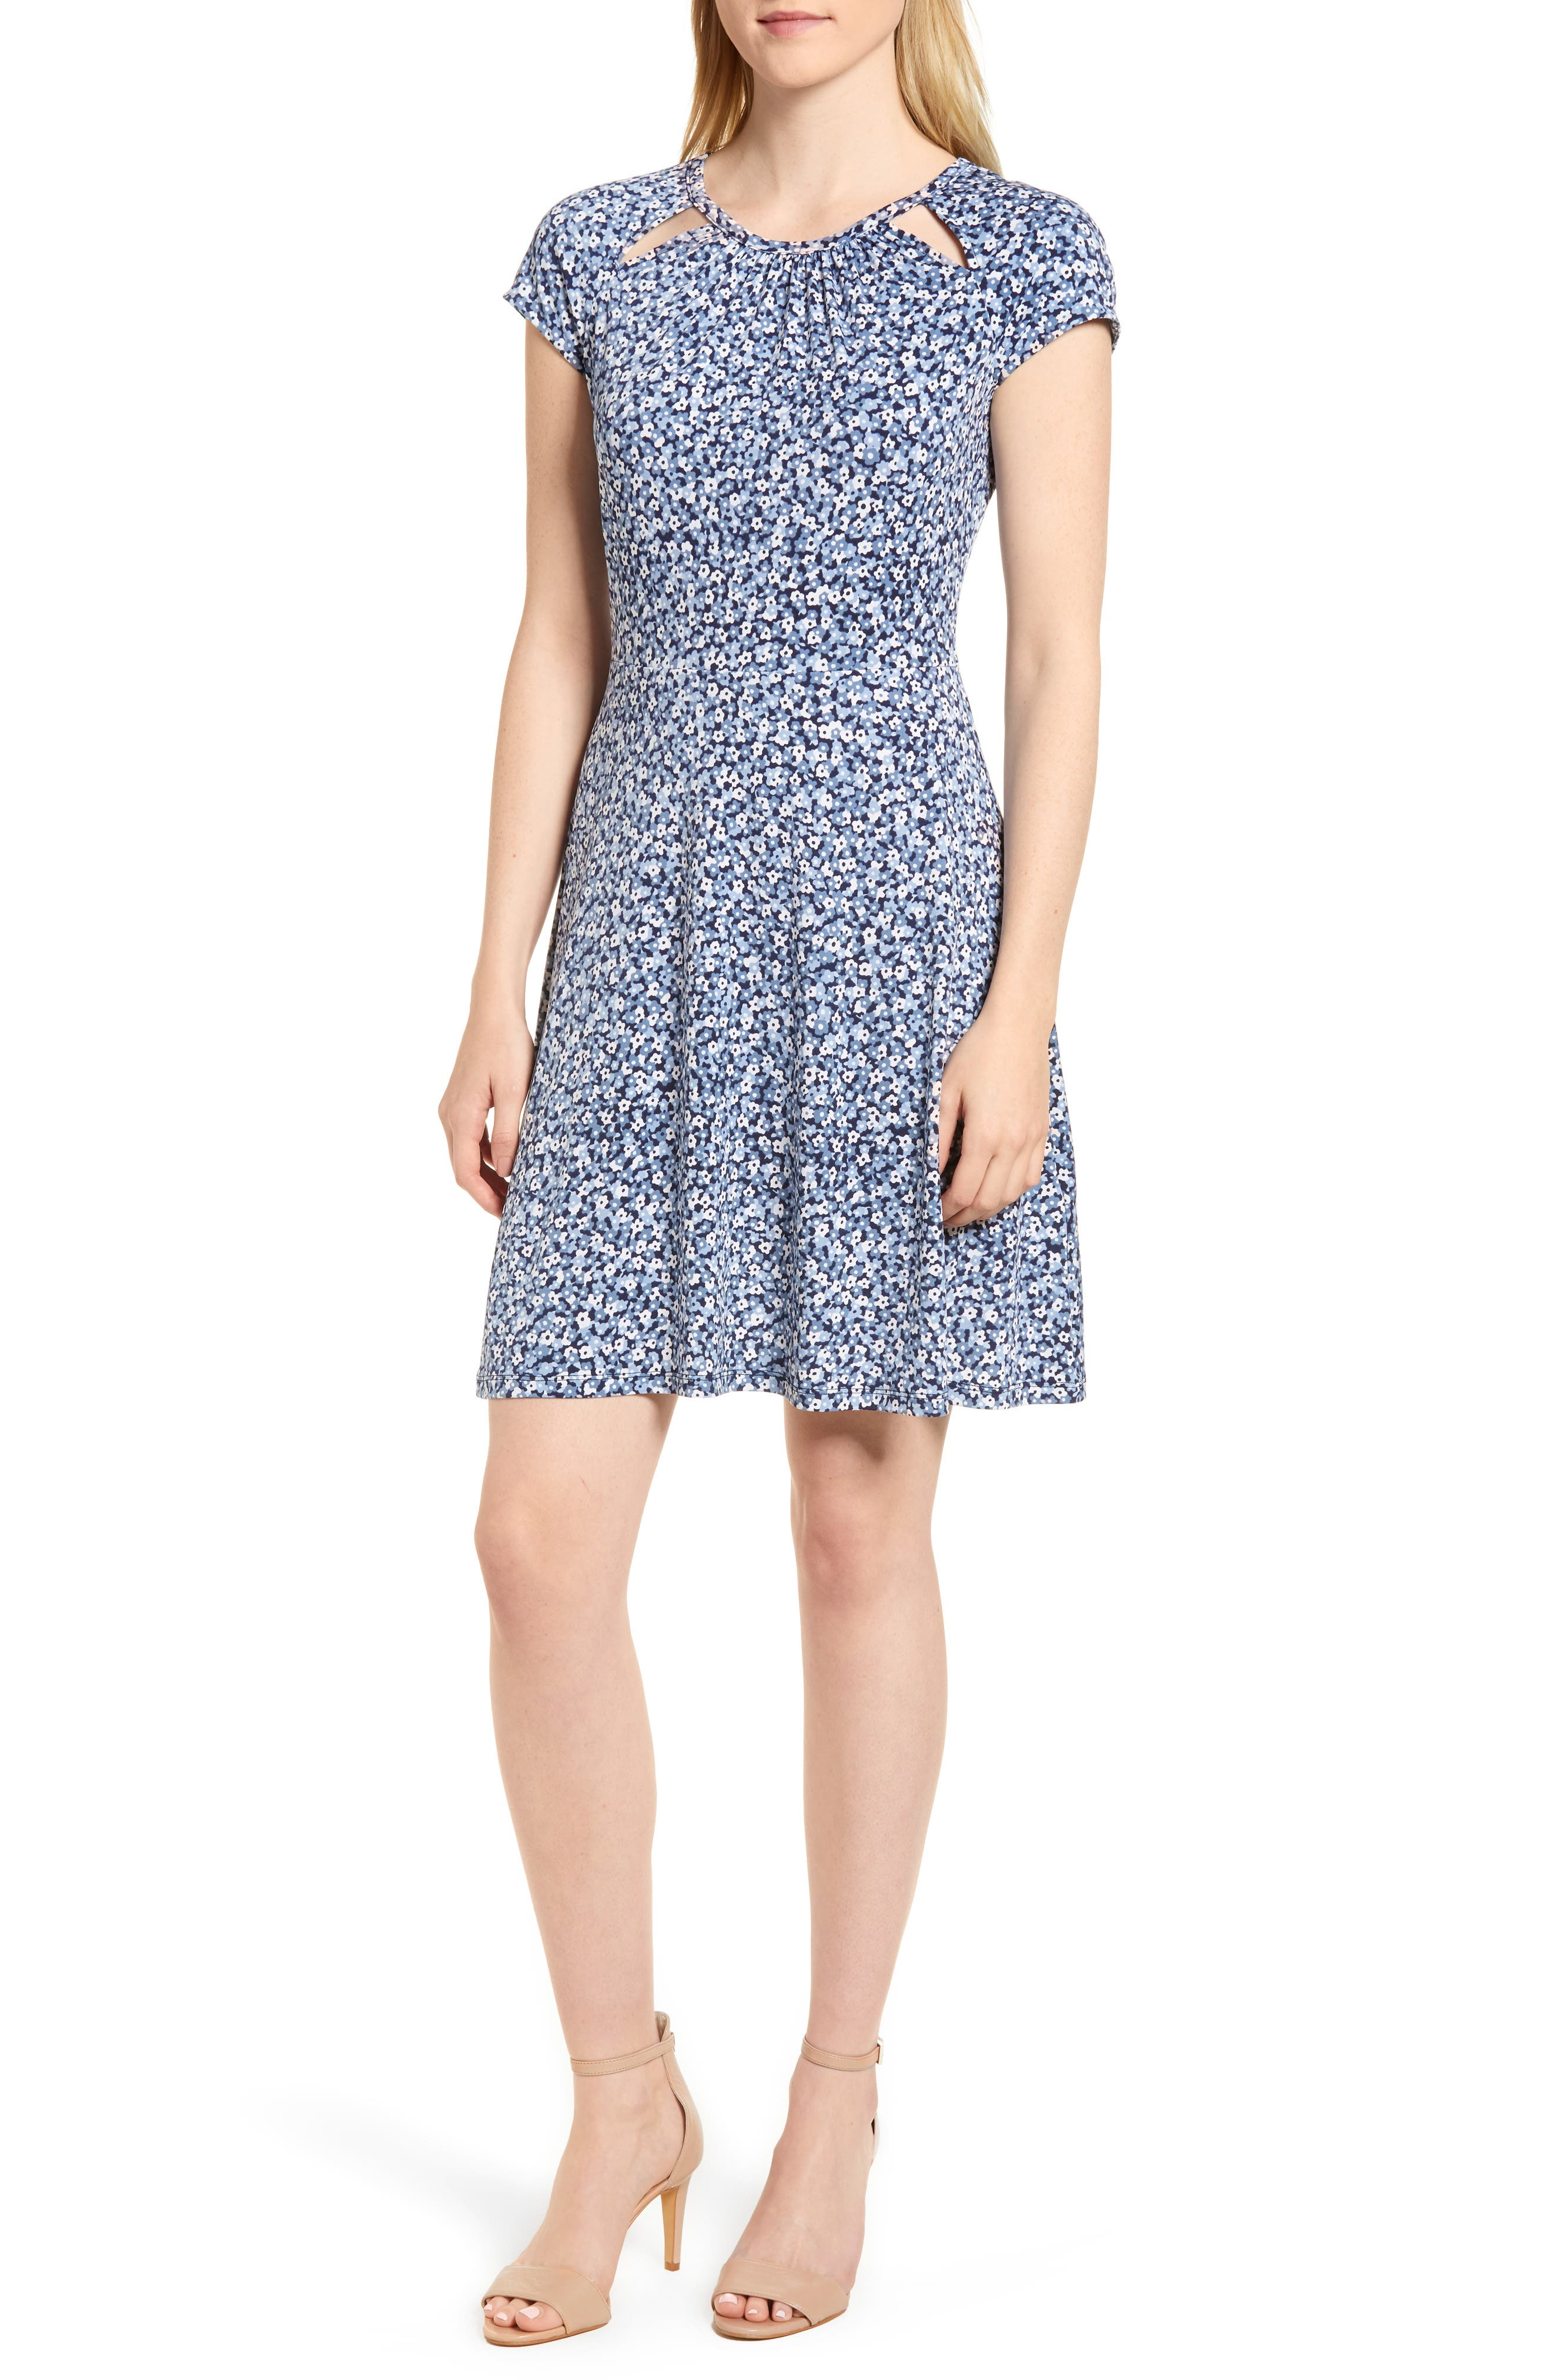 Collage Floral Double Keyhole Dress,                             Main thumbnail 1, color,                             True Navy/ Light Chambray